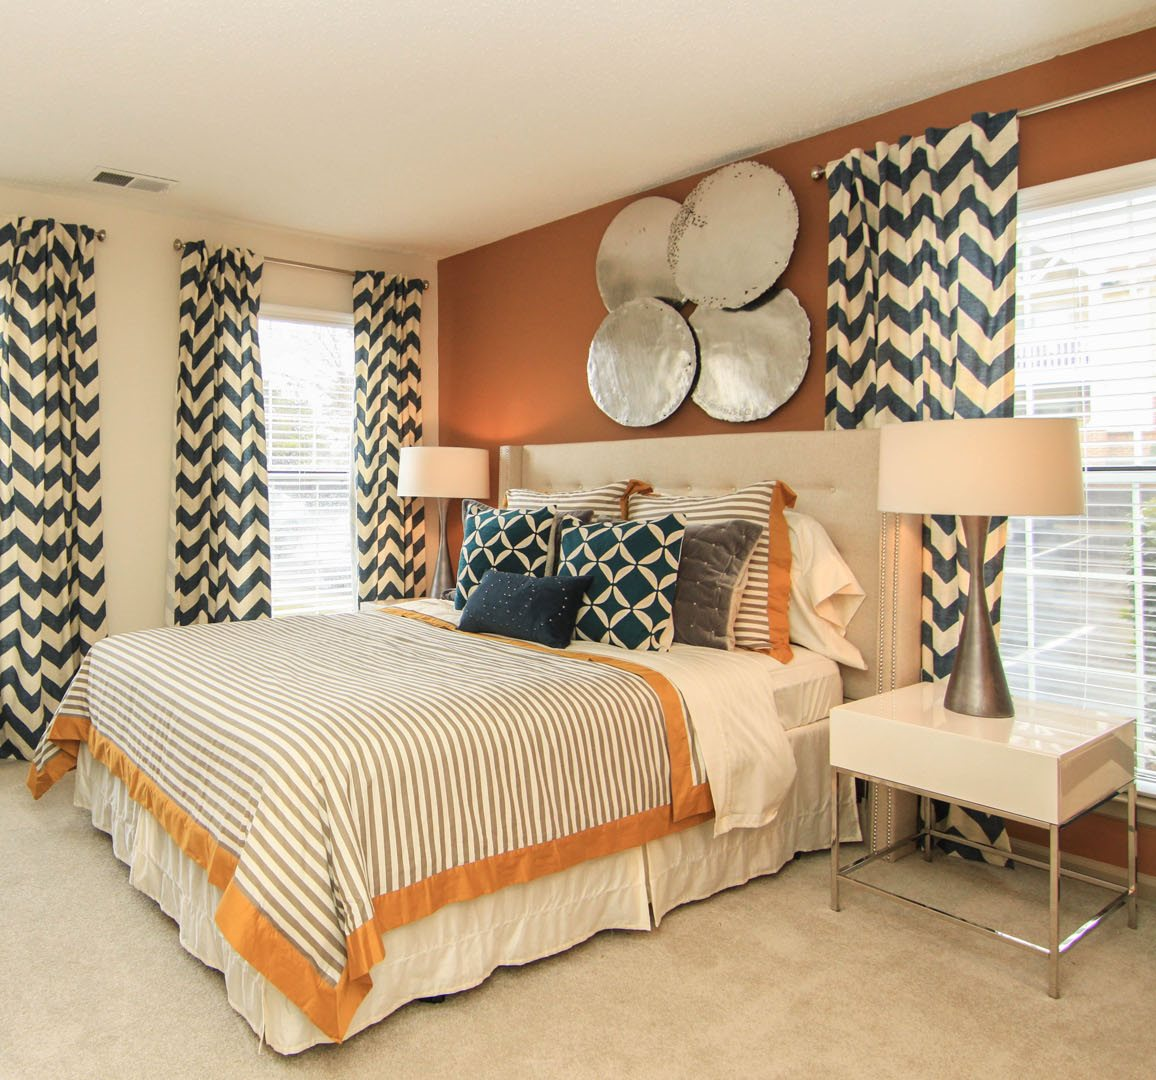 Bedroom at Reafield Village Apartments in Charlotte NC